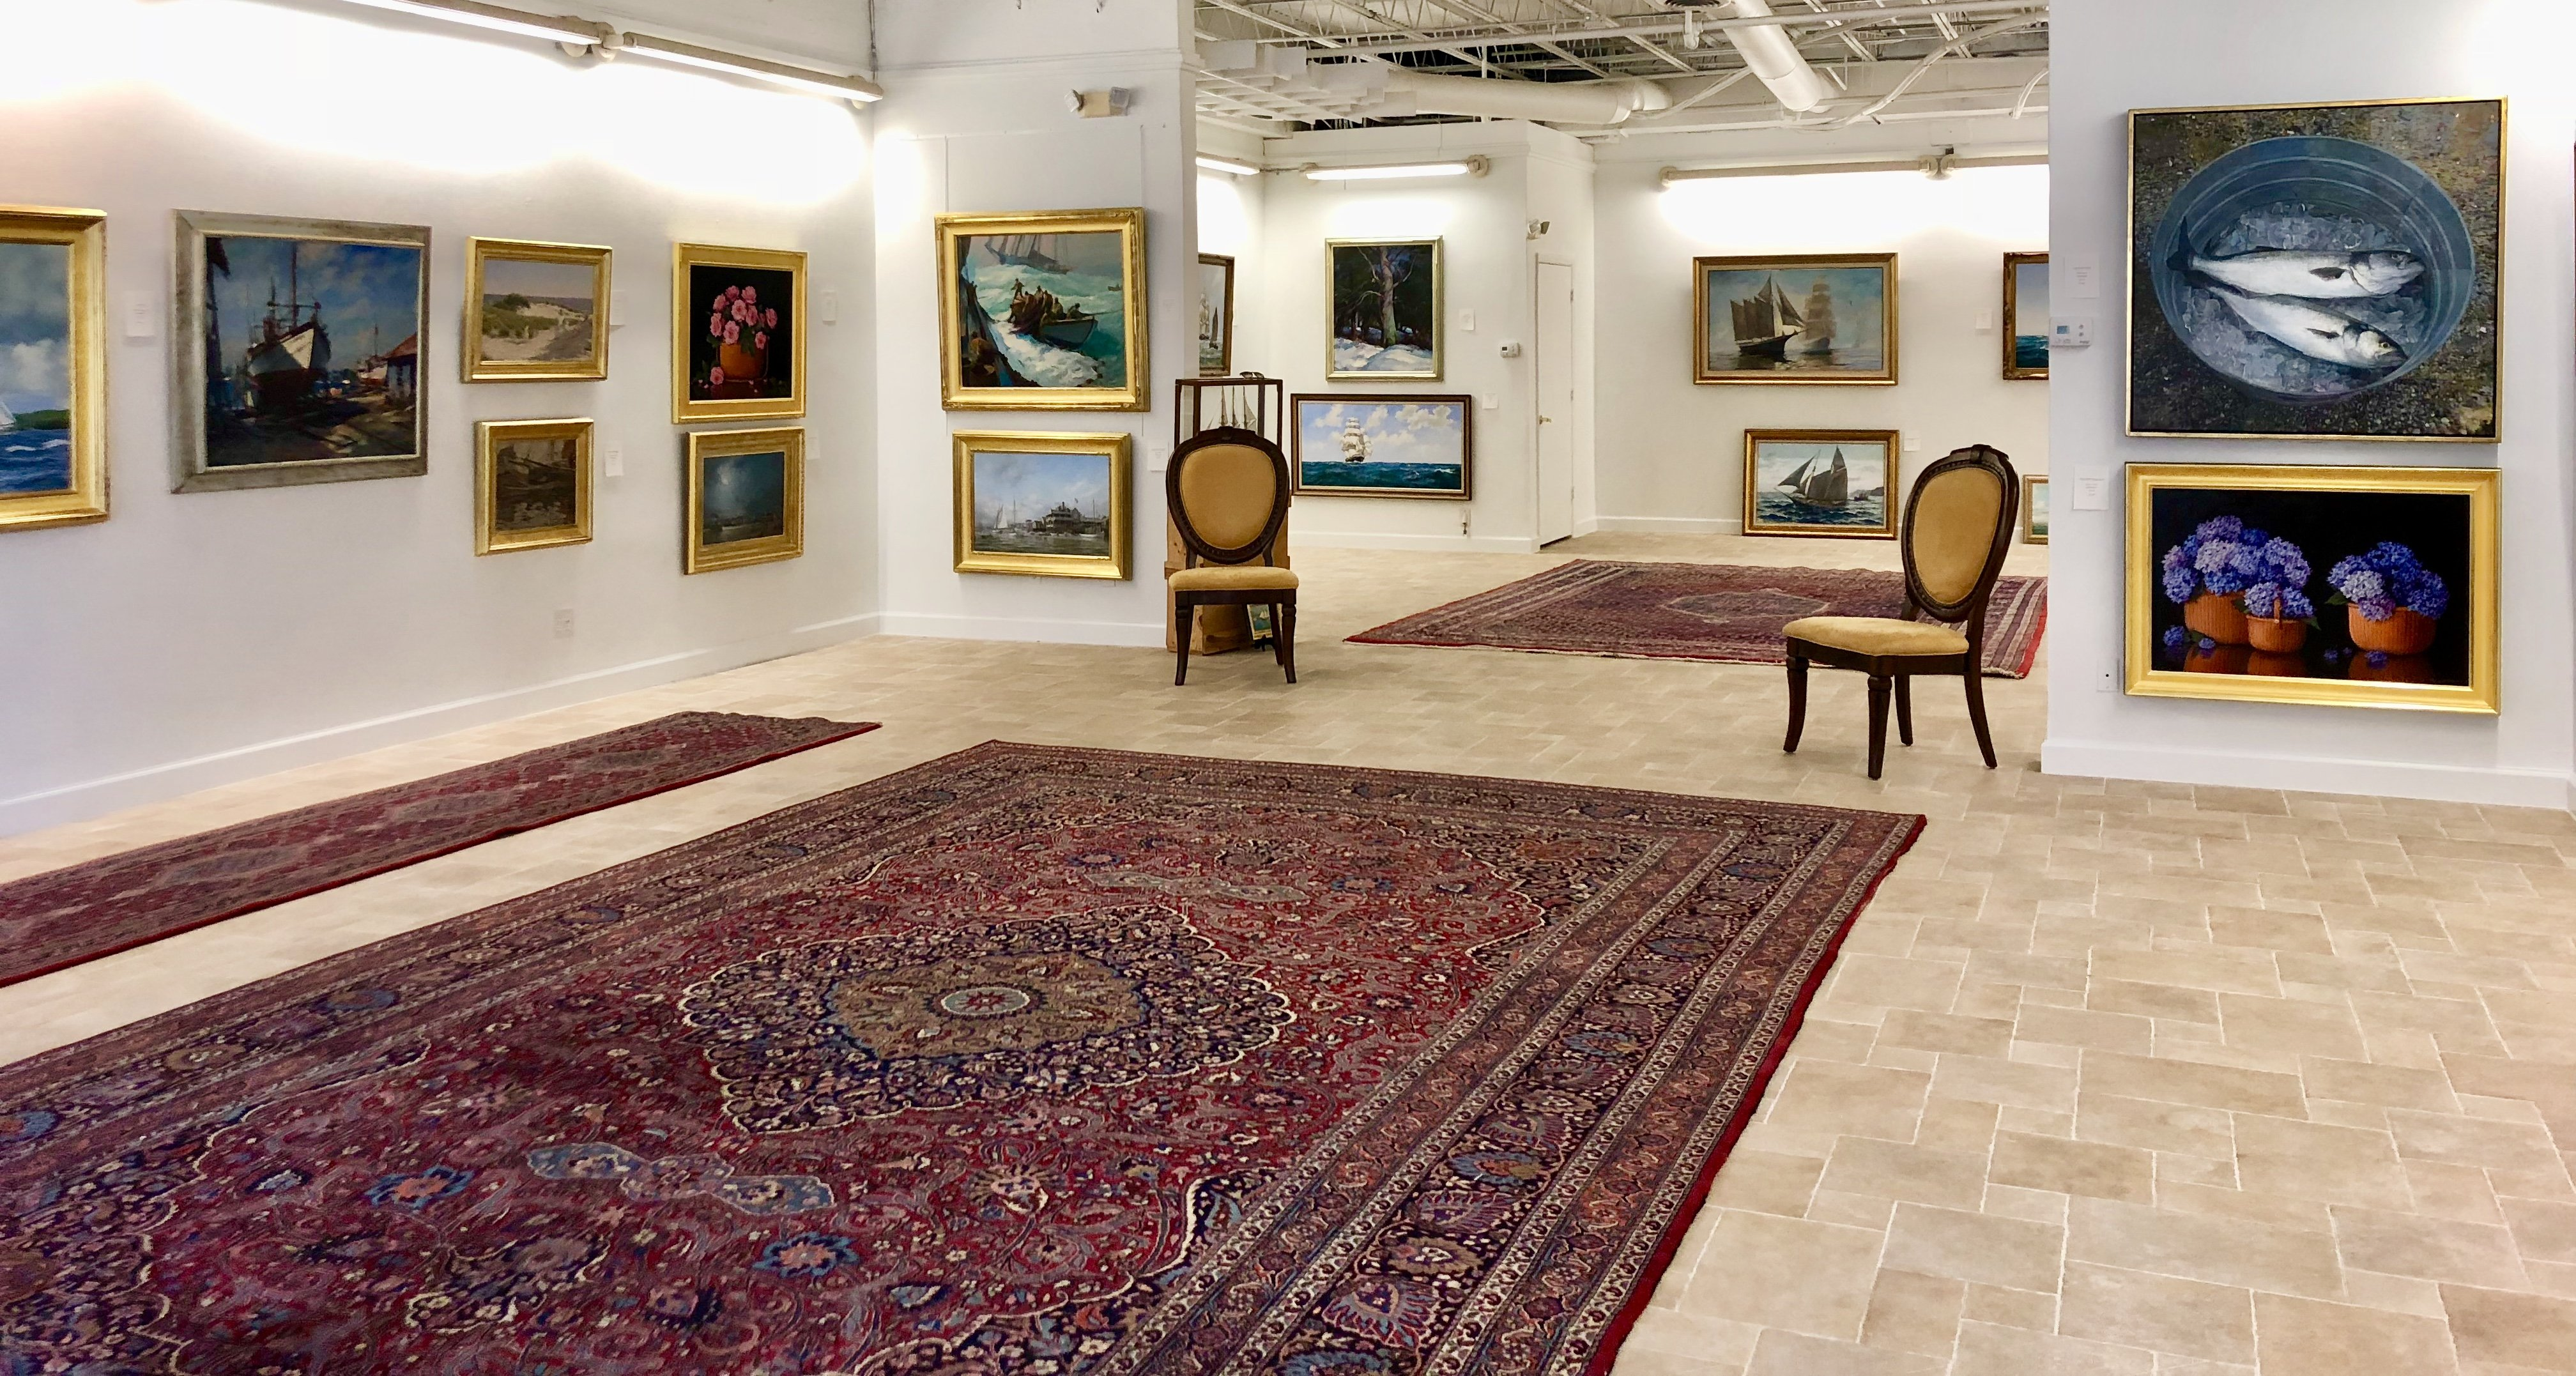 Marine Arts Gallery, New Art Gallery at The Village Shops on Venetian Bay